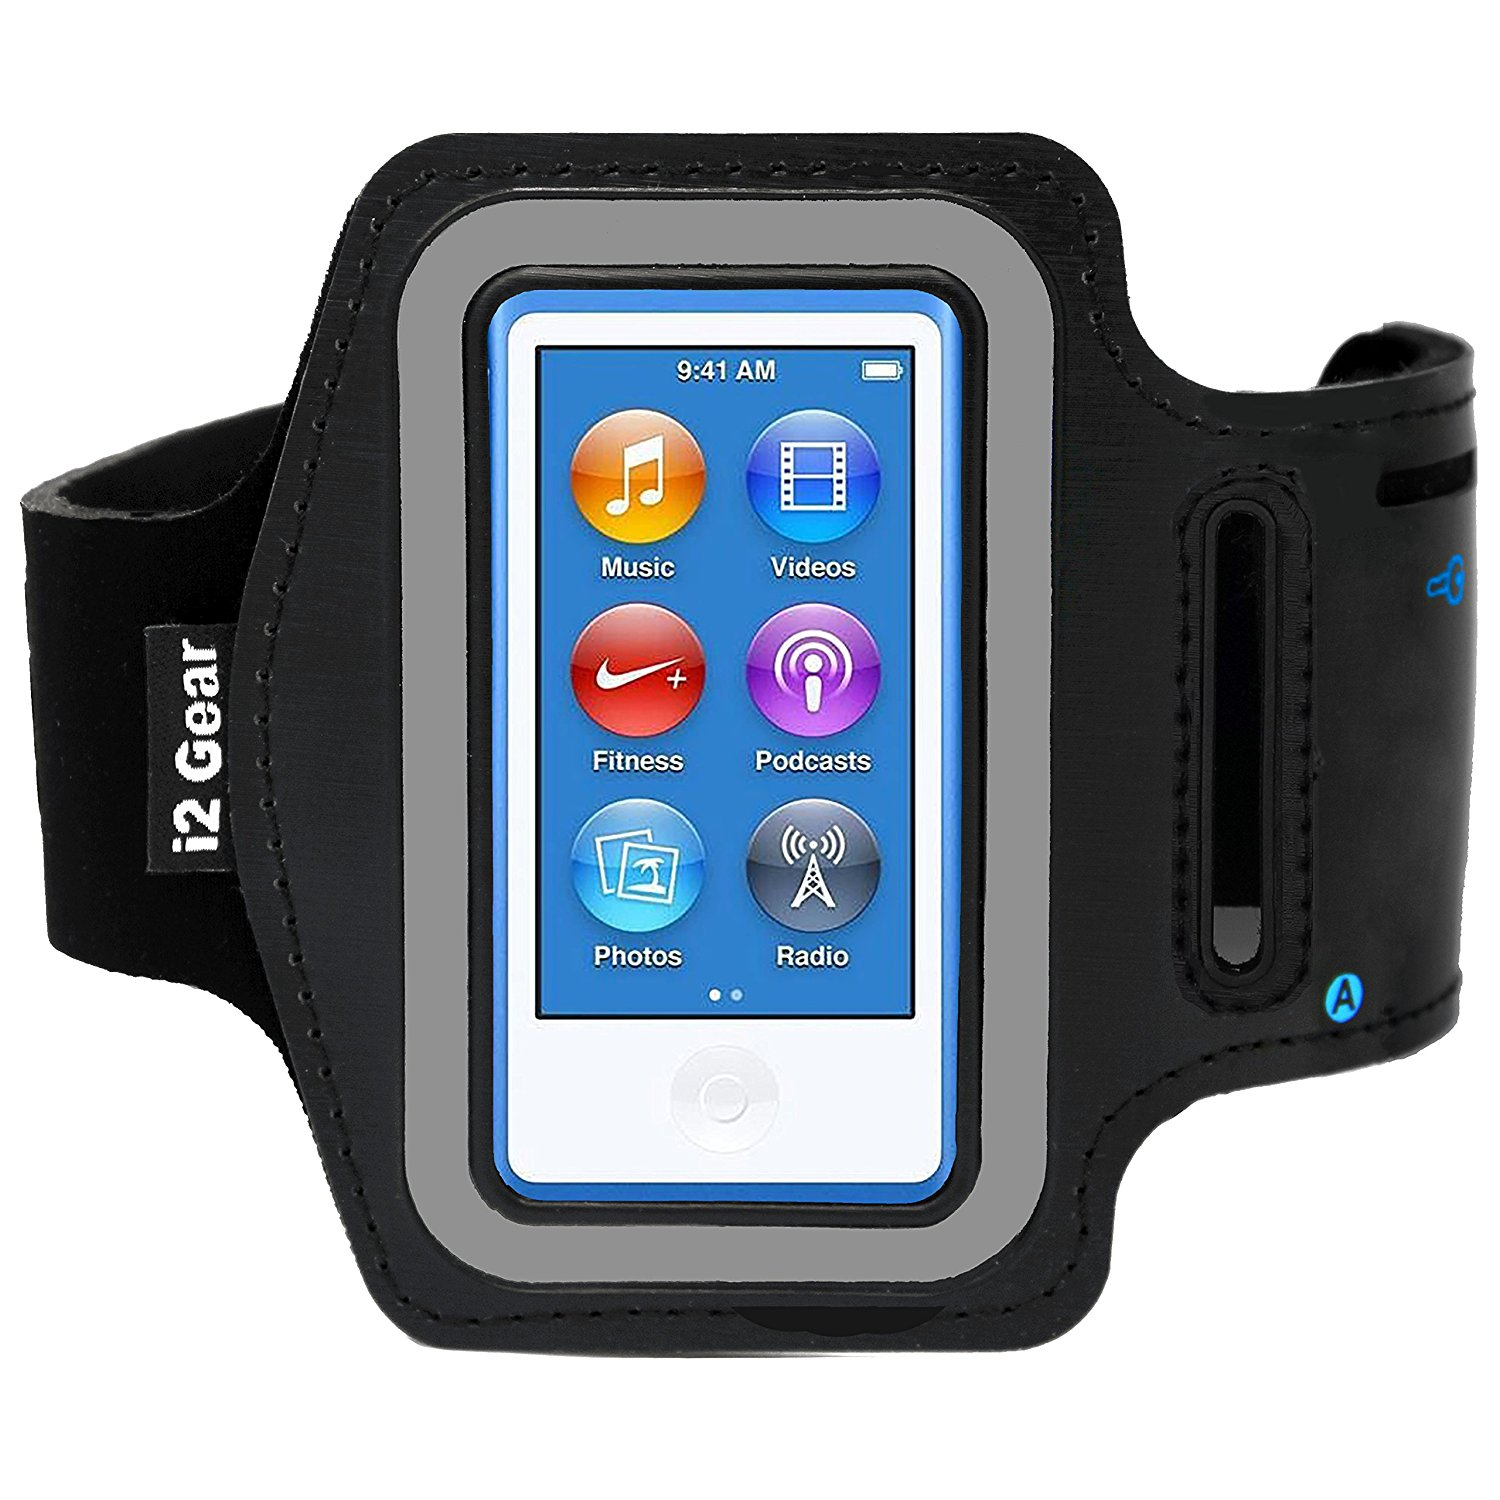 i2 Gear Armband for iPod Nano 8th and 7th Generation Devices (Black)